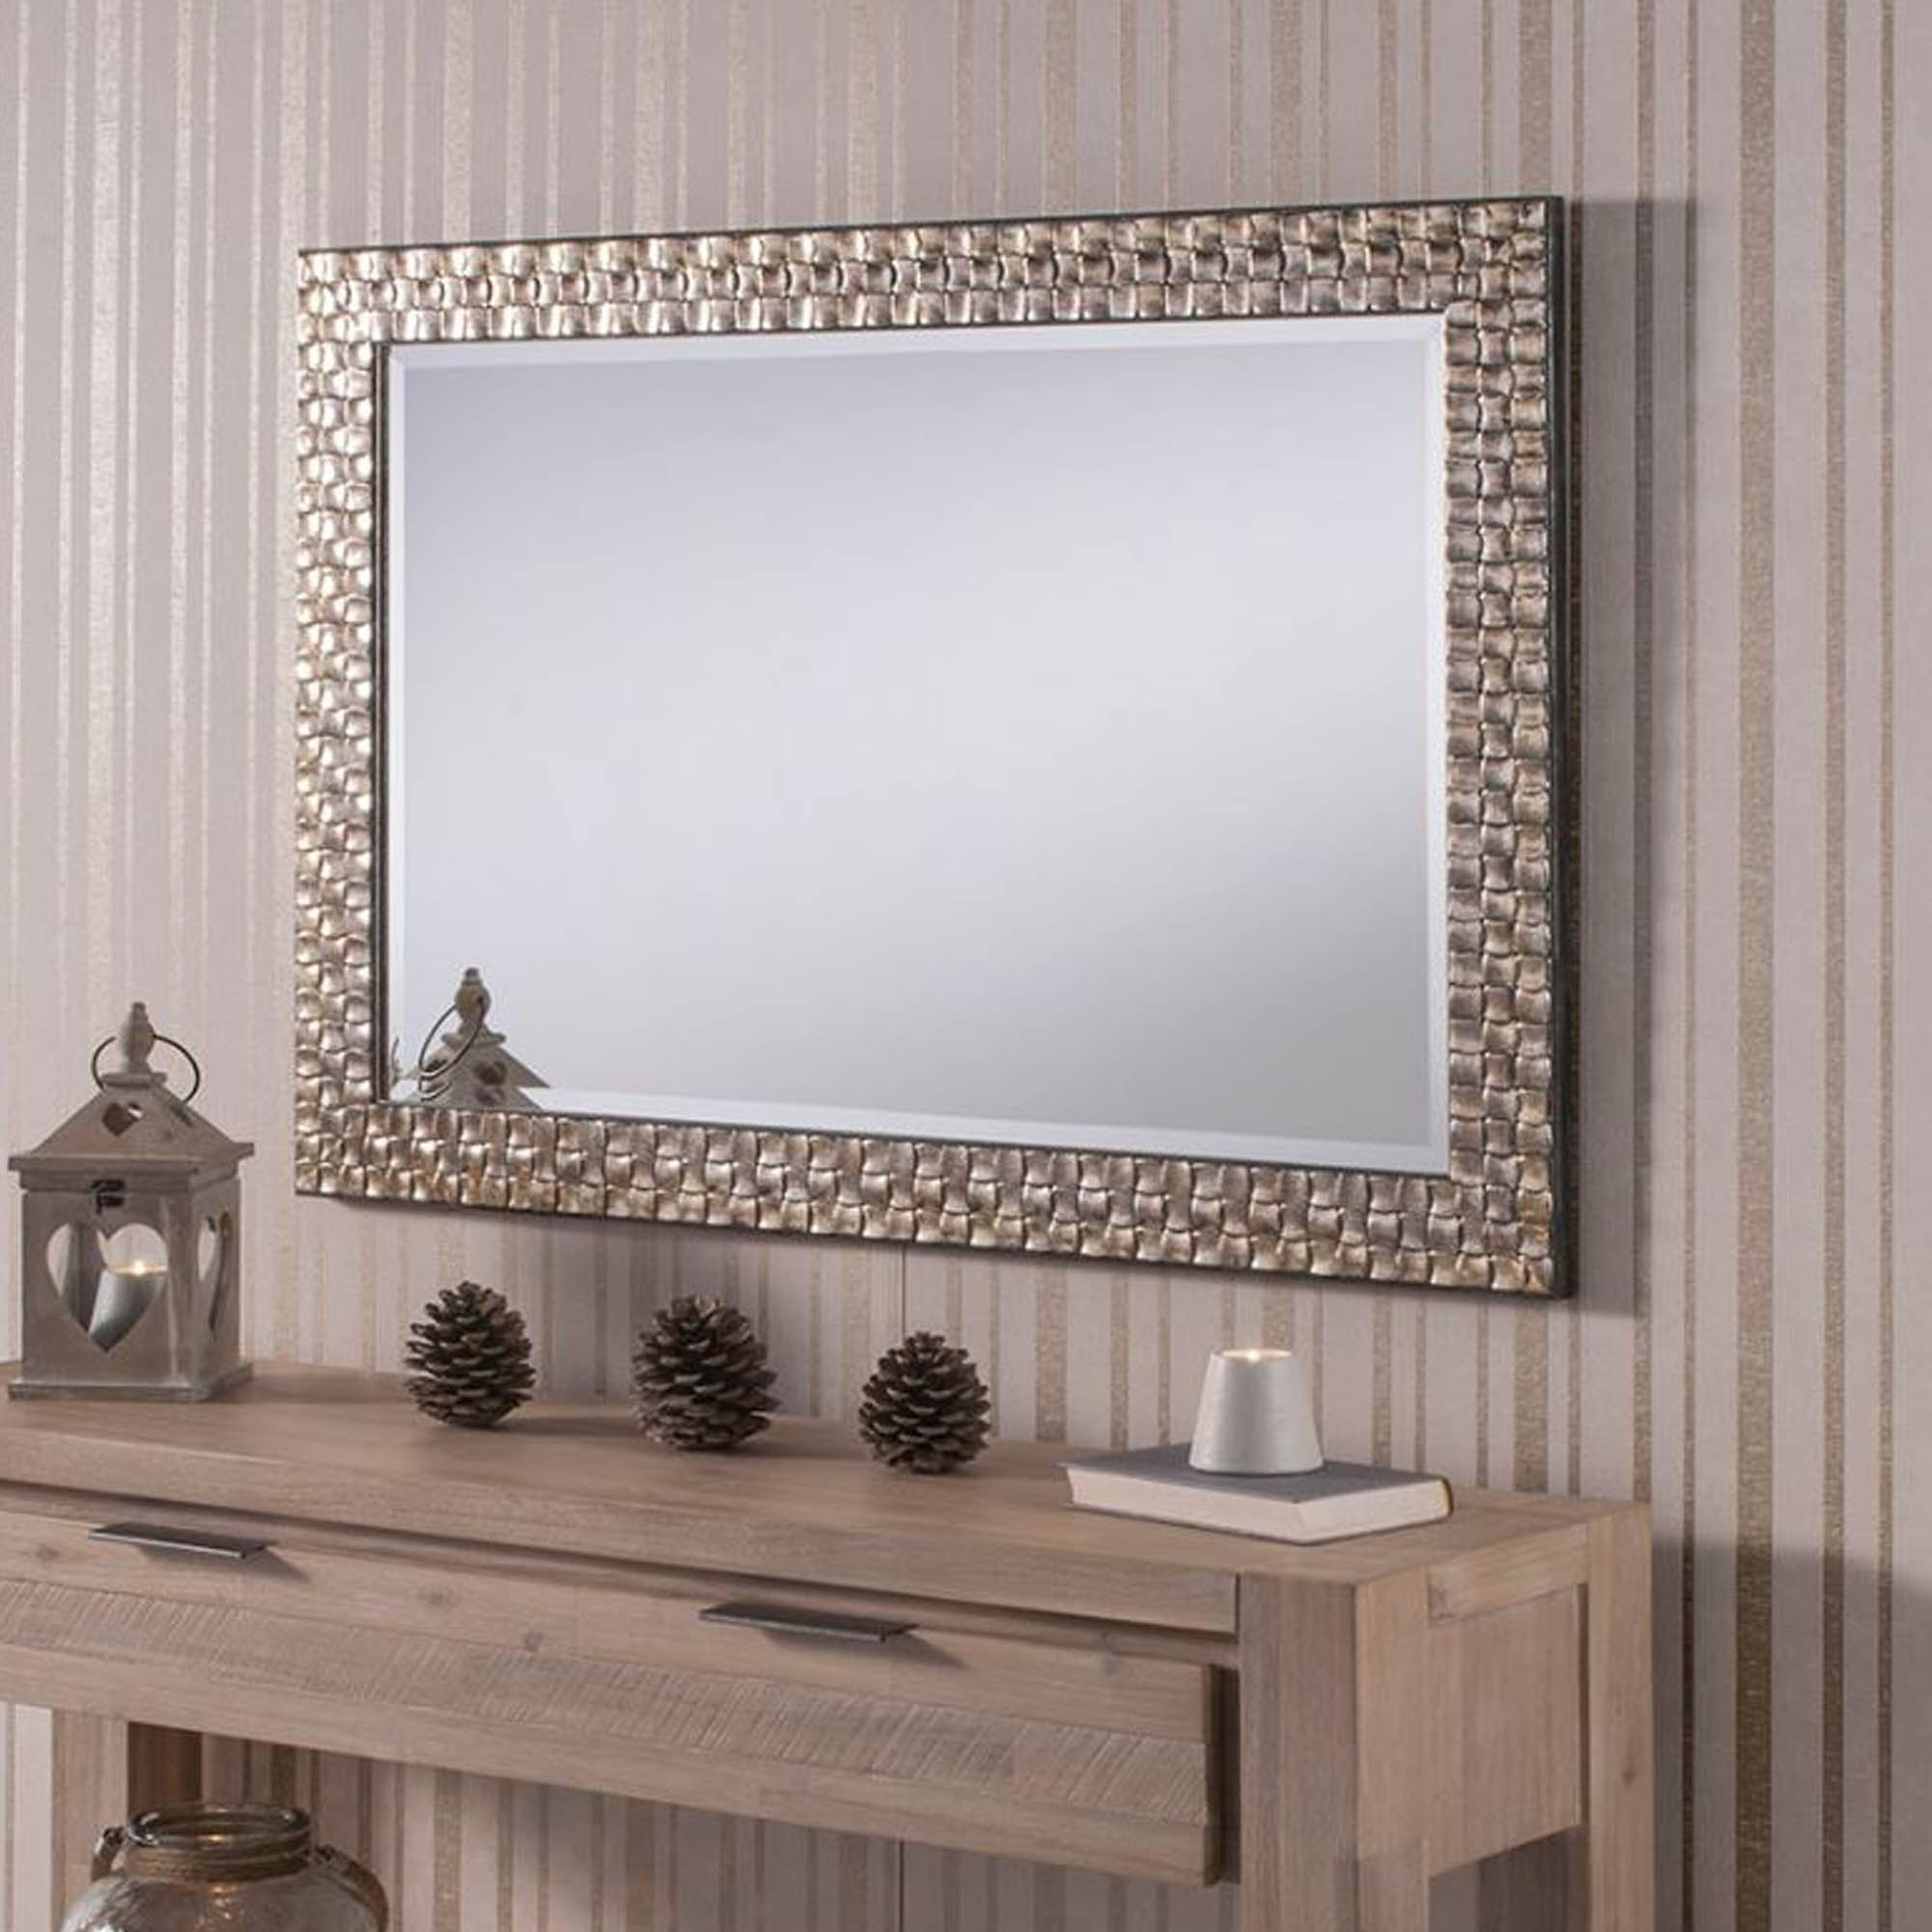 Widely Used Textured Antique Silver Rectangular Wall Mirror Throughout Antique Silver Wall Mirrors (View 4 of 20)